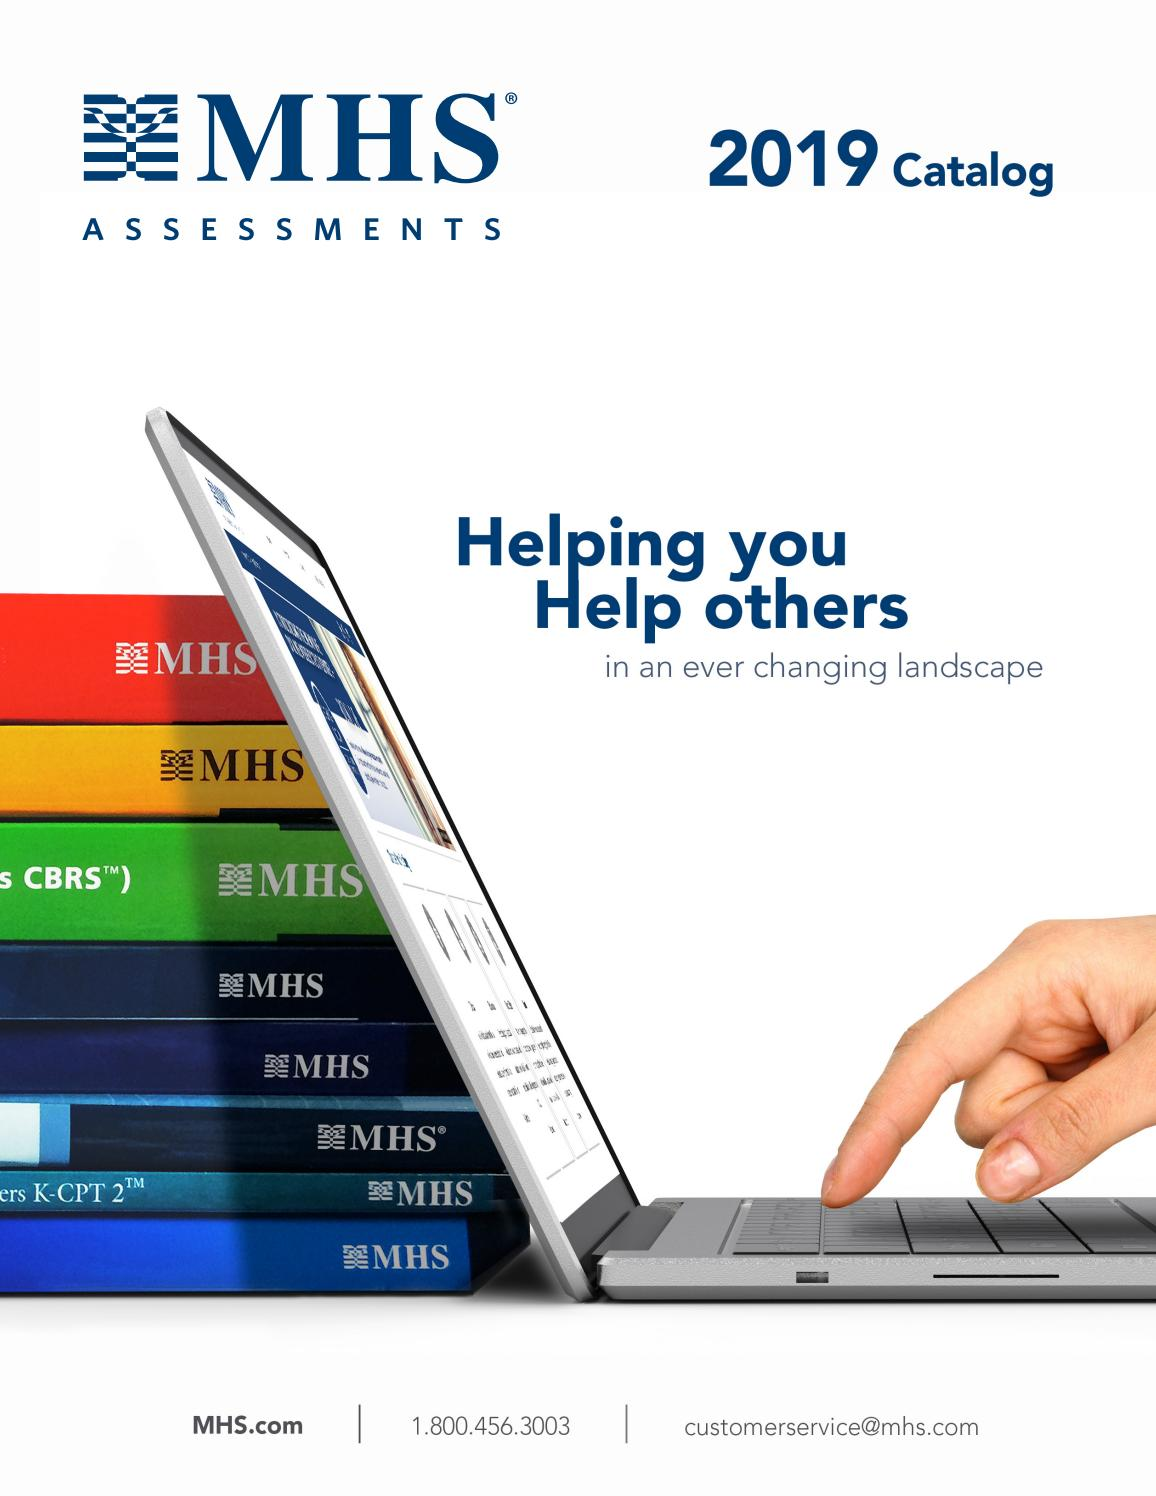 Multi Health Services Inc 2019 Catalog Us Edition By Mhs Assessments Issuu